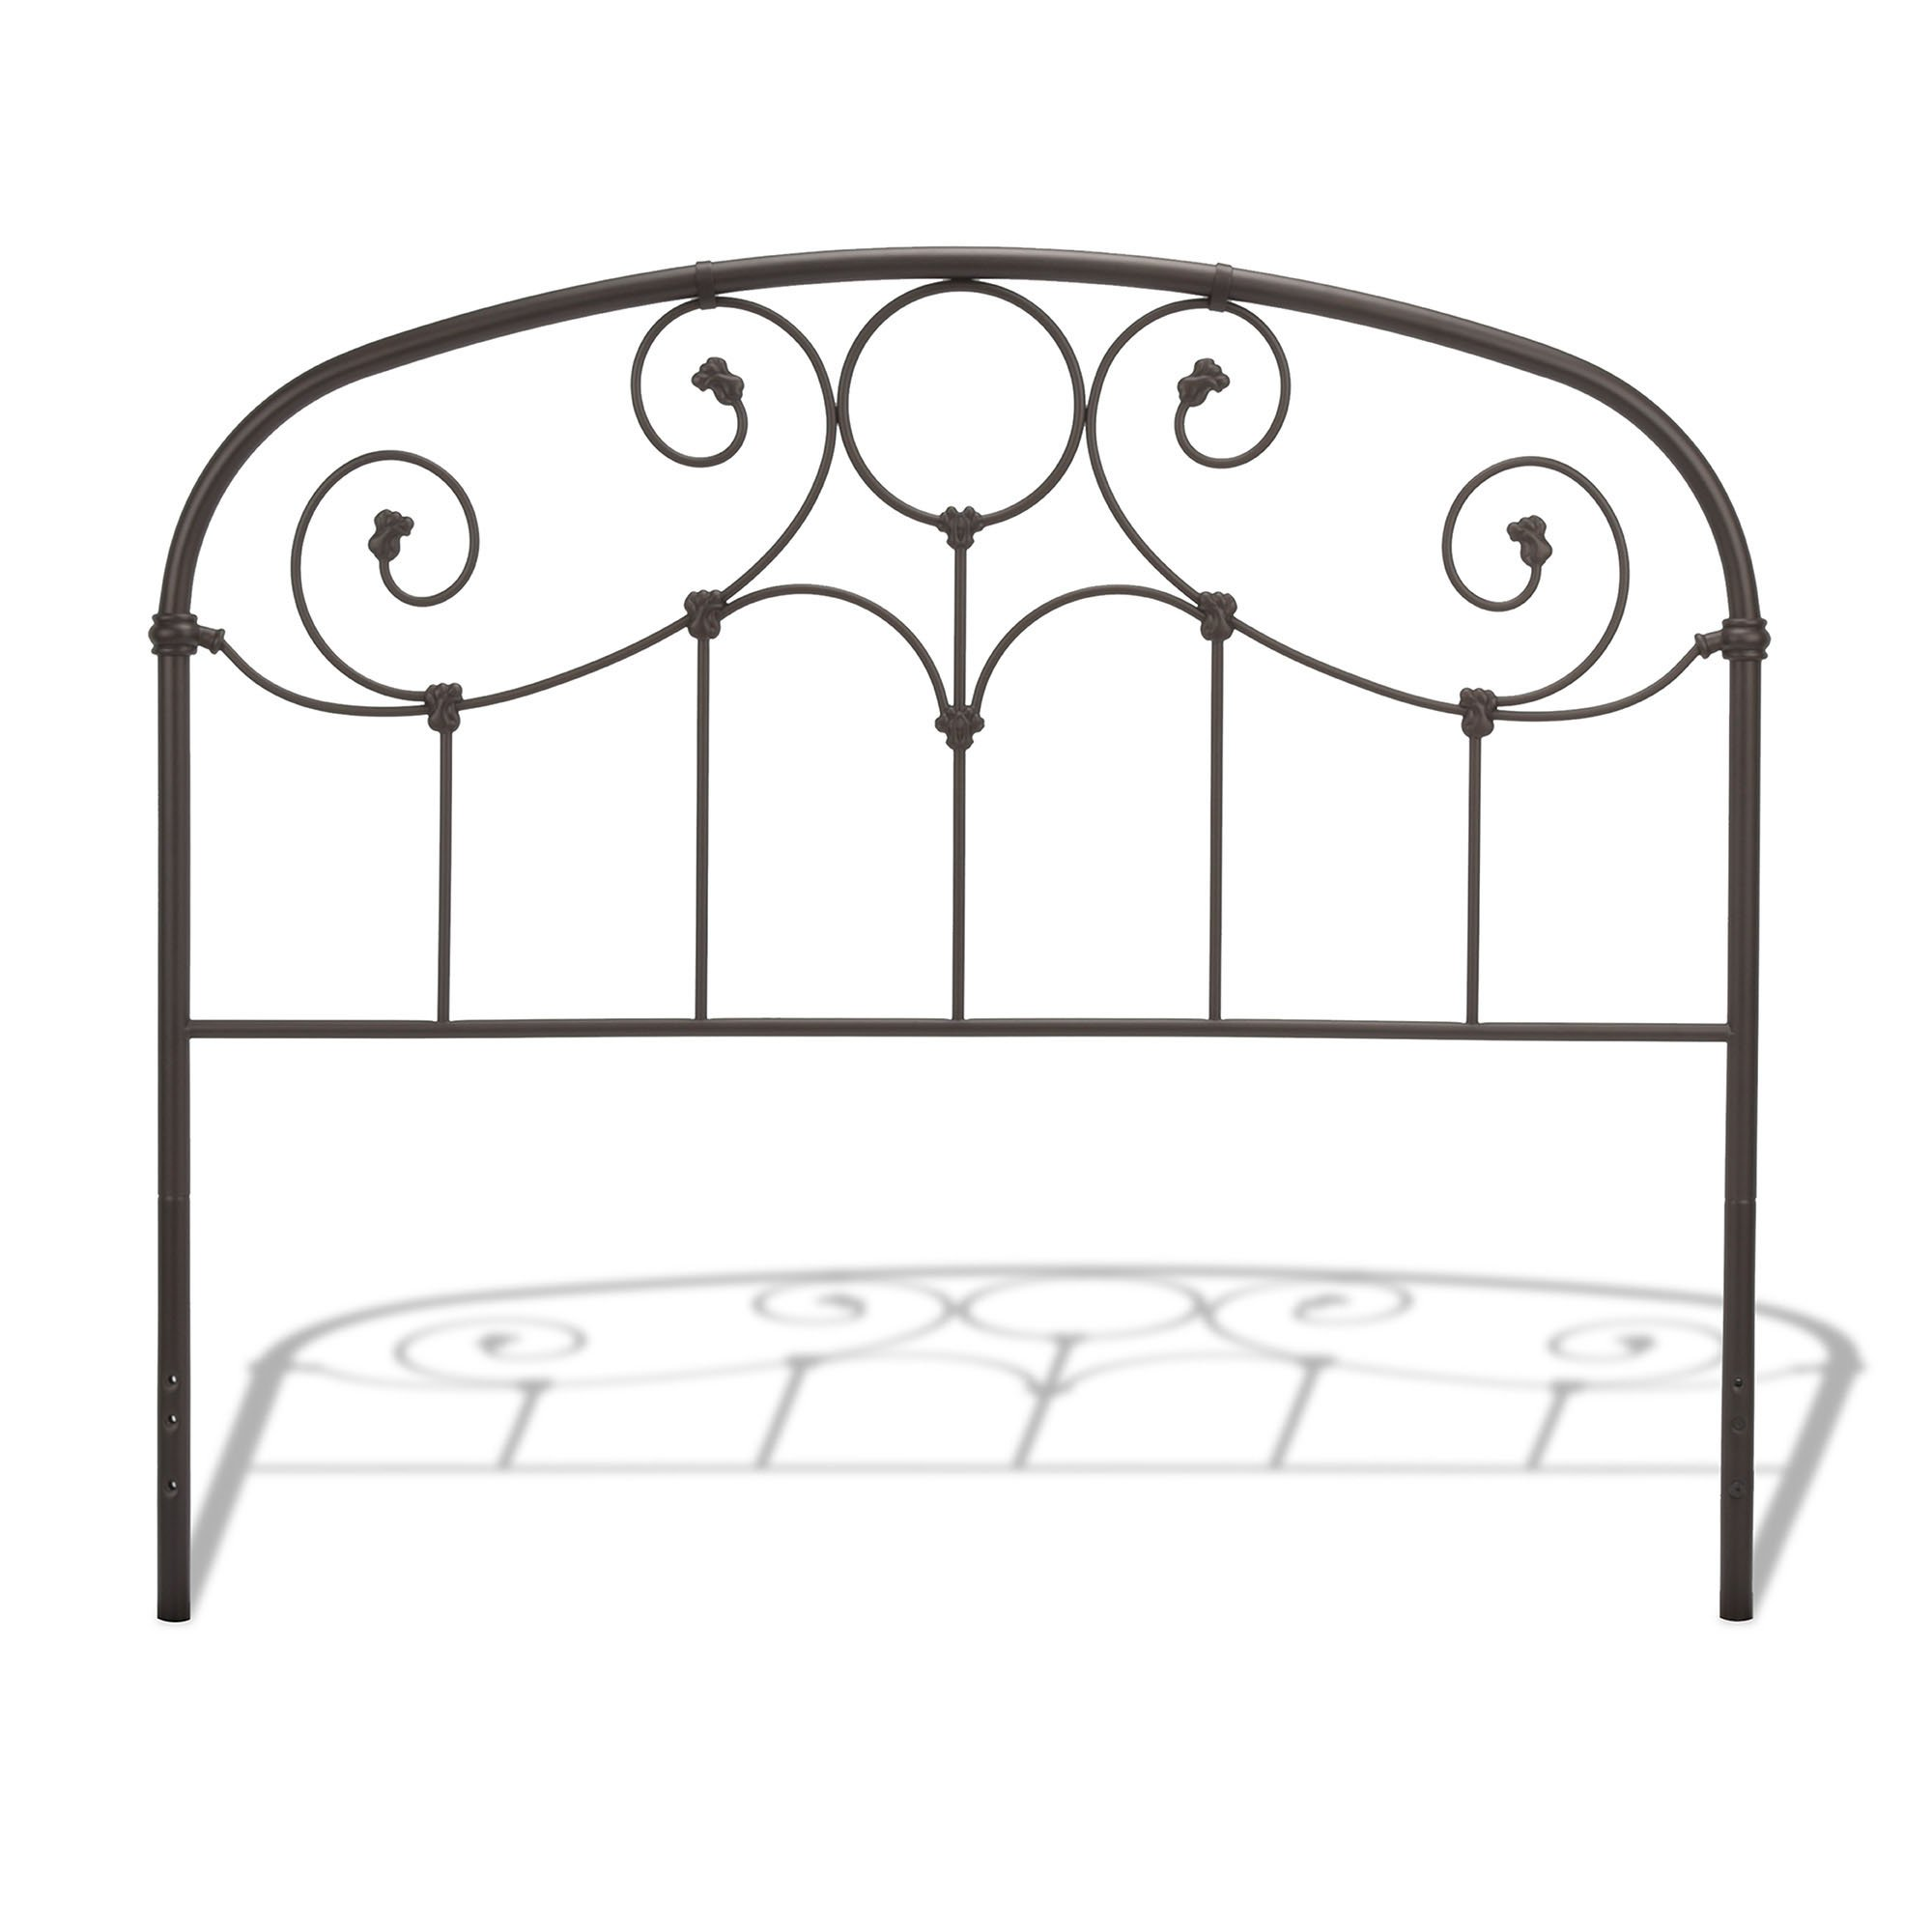 Grafton Metal Headboard with Scrollwork Design and Decorative Castings, Rusty Gold Finish, Queen